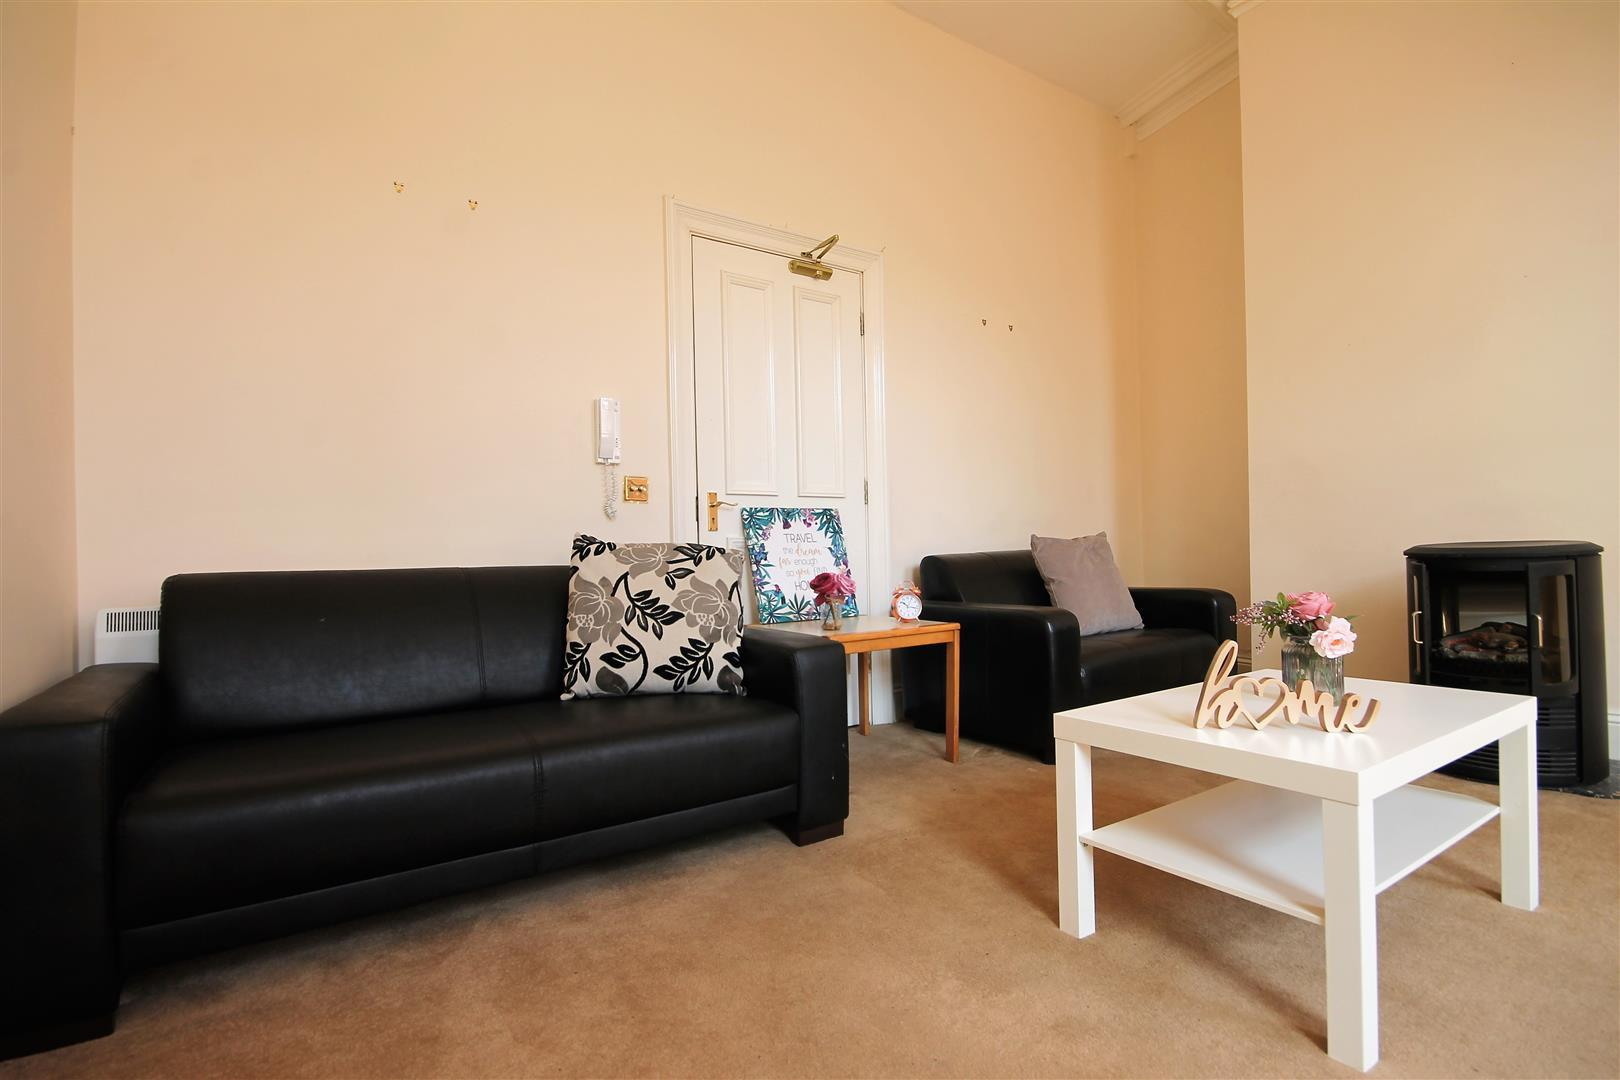 Victoria Chambers Newcastle Upon Tyne, 2 Bedrooms  Apartment ,To Let